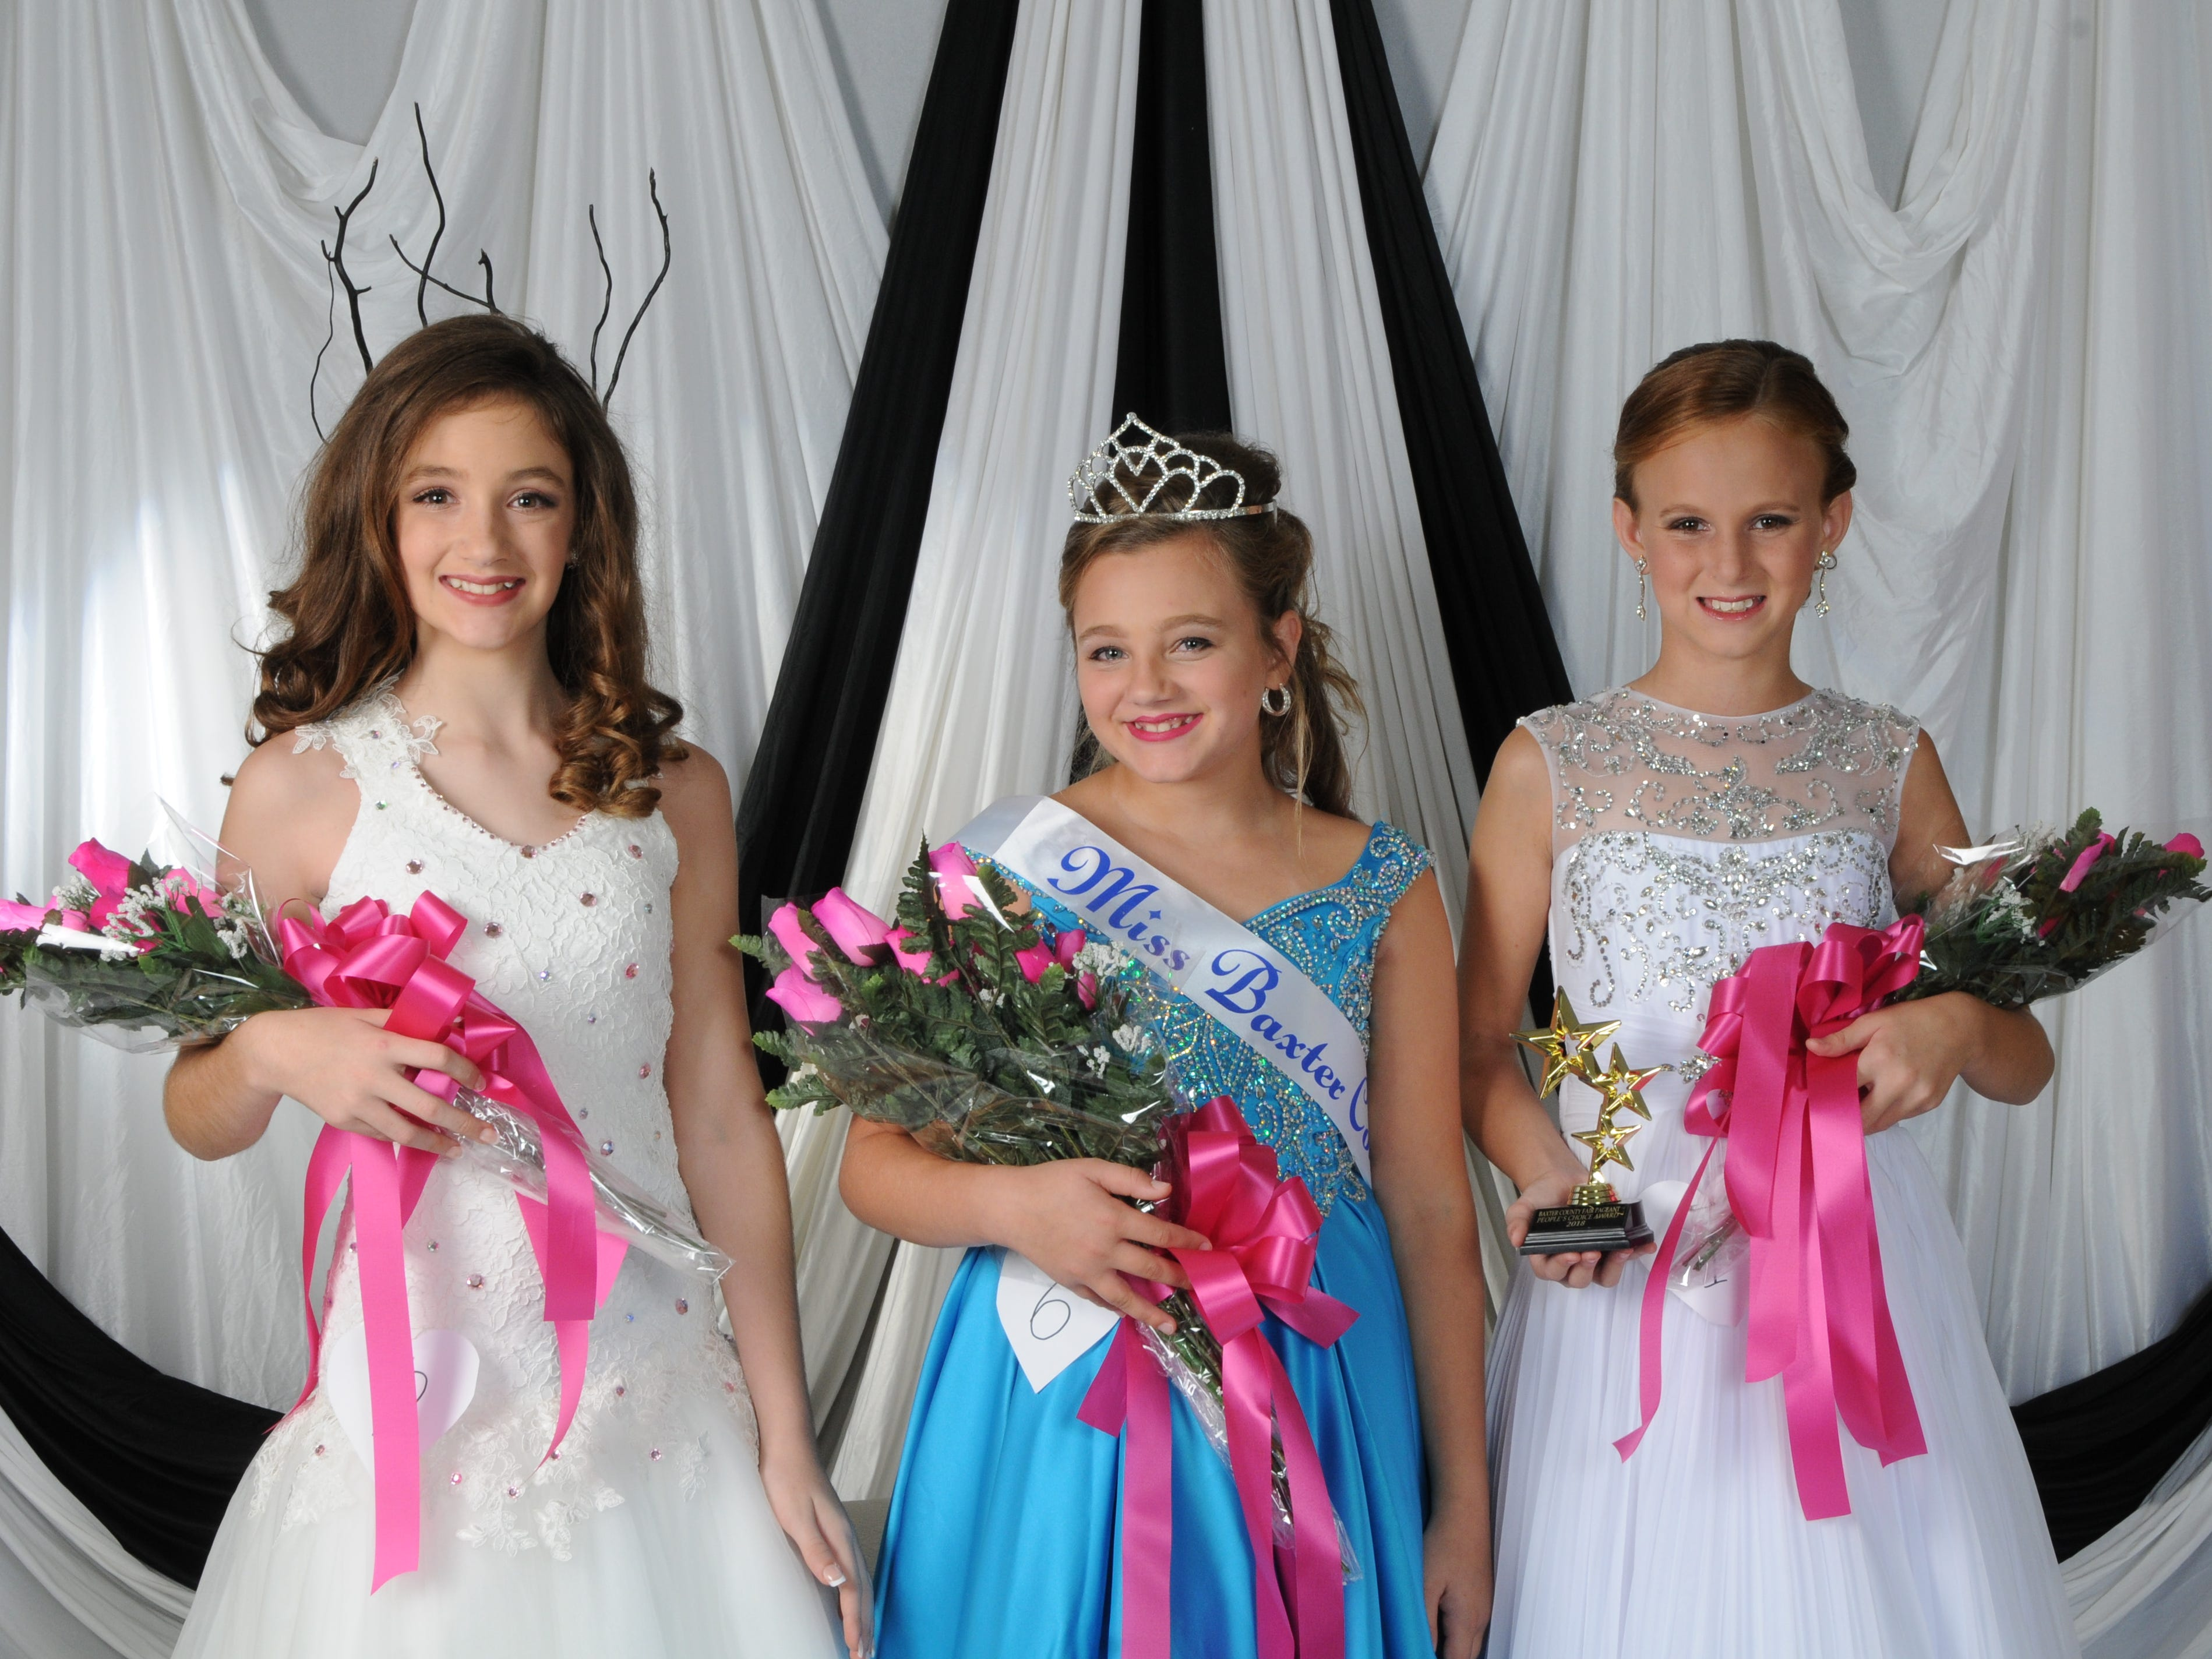 Marlee Shields (center), daughter of Sammie and Monica Shields of Norfork, was named Miss Baxter County at the annual Baxter County Fair Pageant on Saturday at Dunbar Auditorium. Audrian Litty (right), daughter of Ryan and Chelsea Kaye of Mountain Home and Bo Litty of Mountain Home, was named first alternate; and Alexia Loudermilk (left), daughter of Paul and Kelli Loudermilk of Gassville, was named second alternate. Litty was also the People's Choice winner.